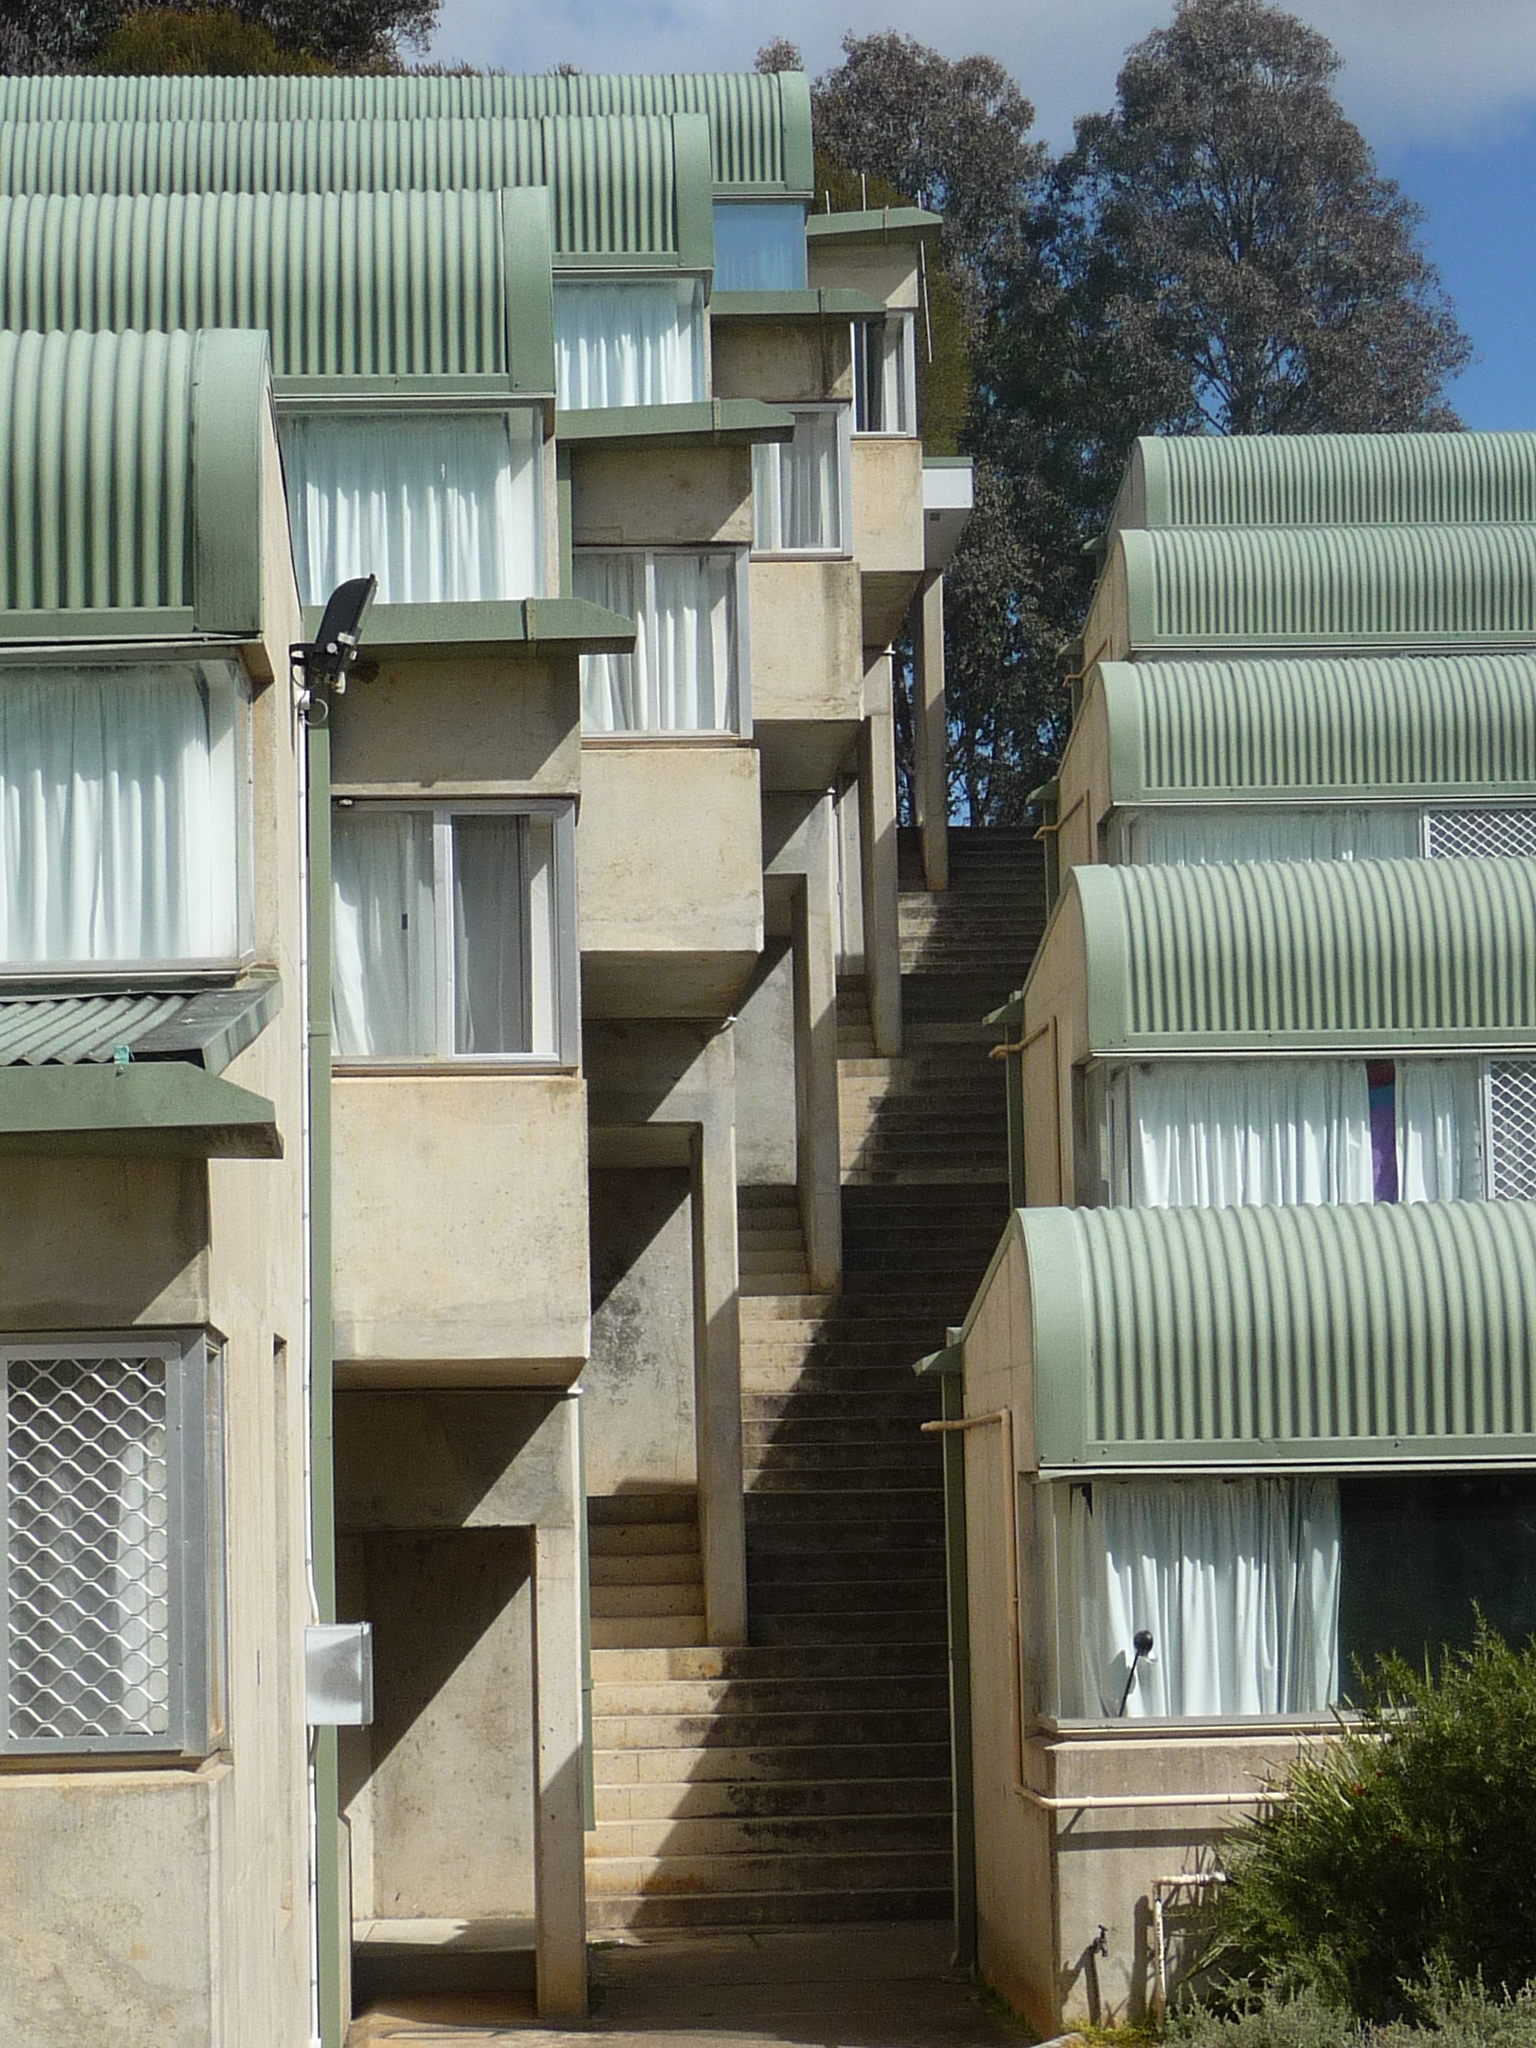 University of Canberra residents' building